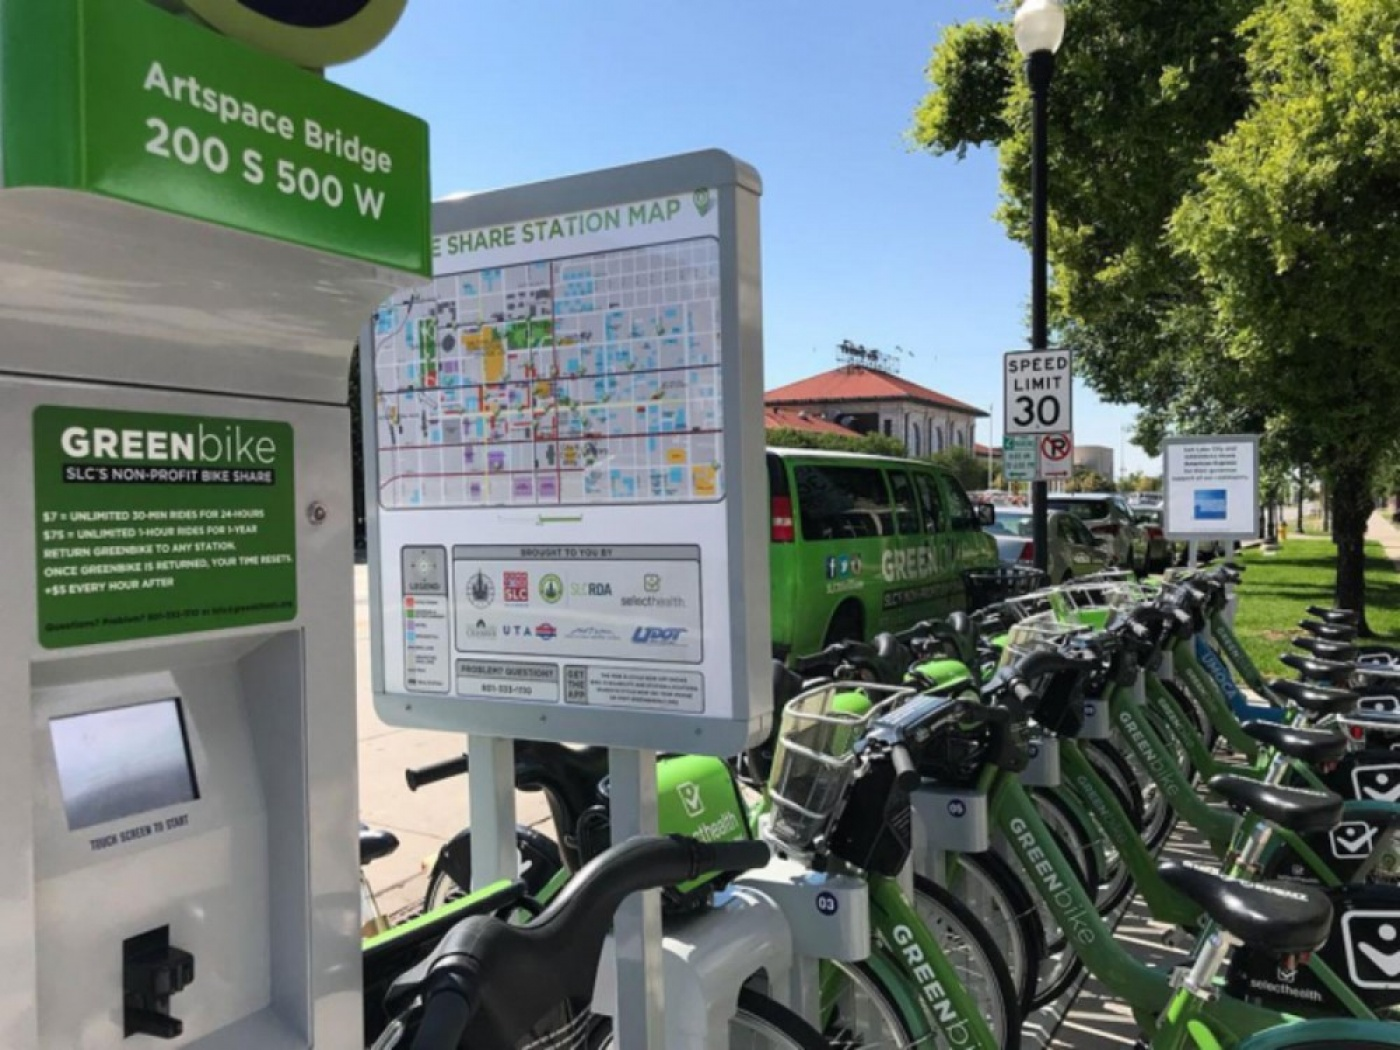 Artspace Commons has a new GREENbike Station